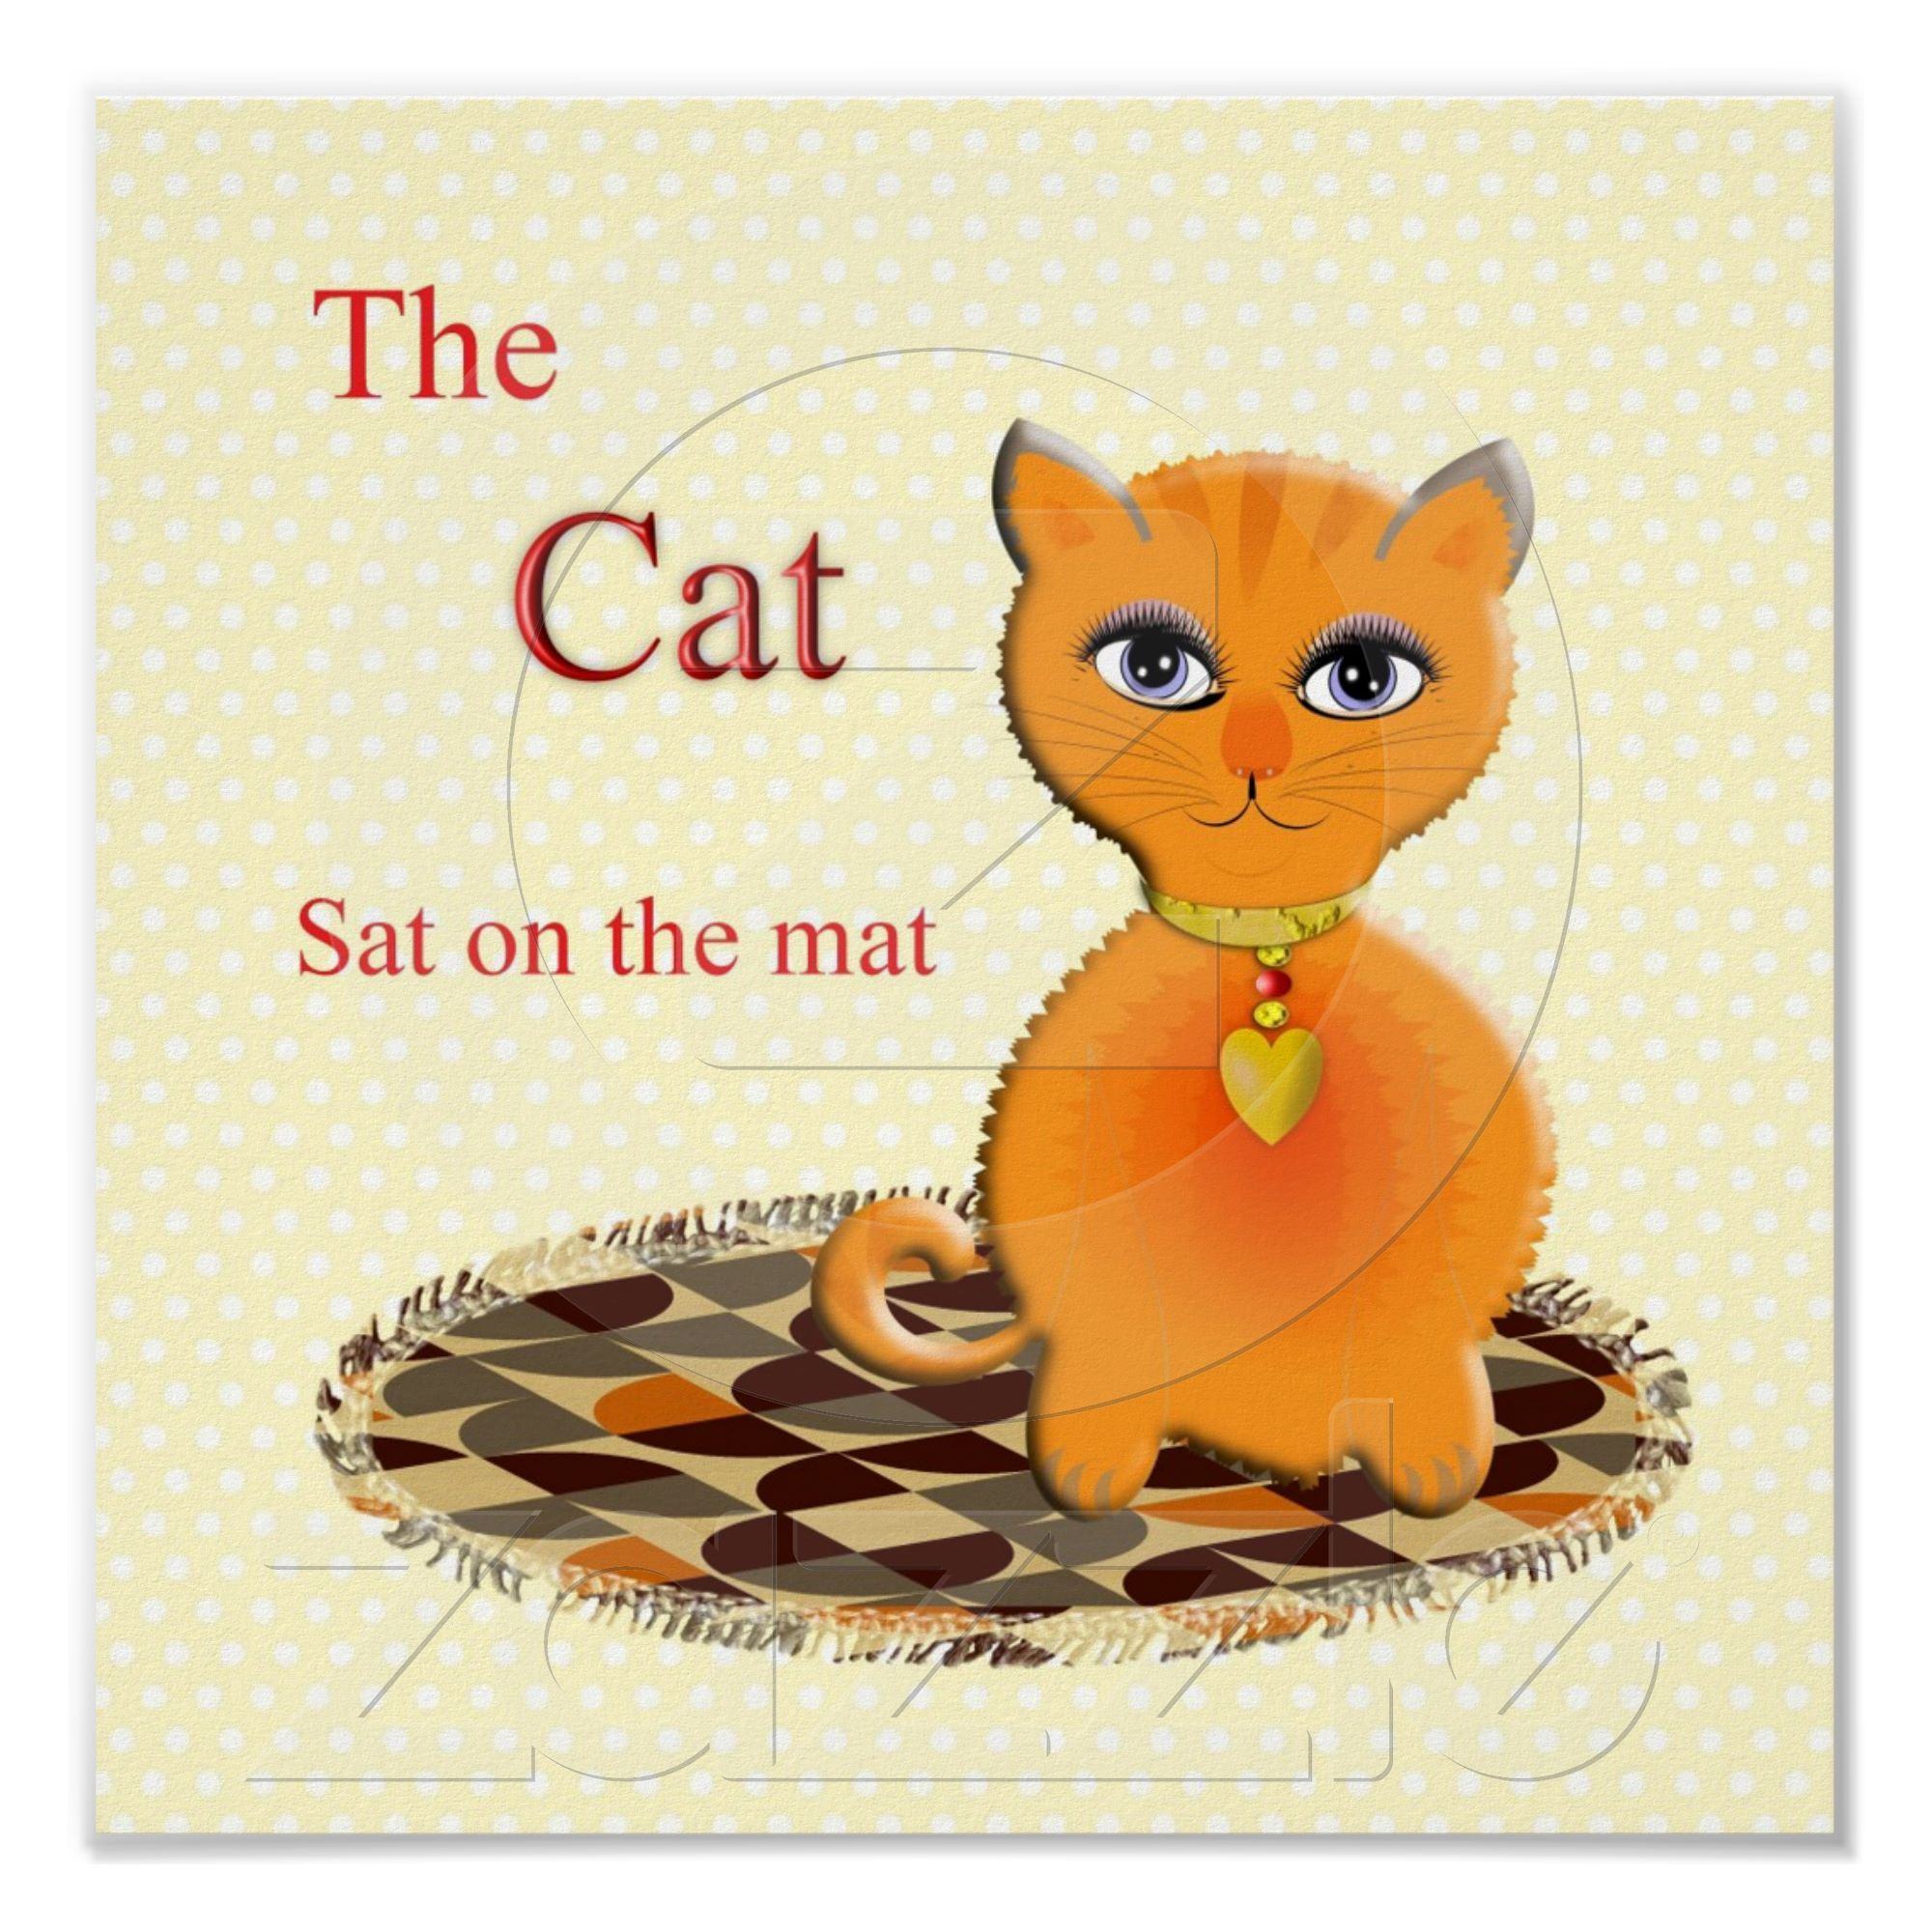 Cute Cat Sat On The Mat Kids Poster Print From Zazzle